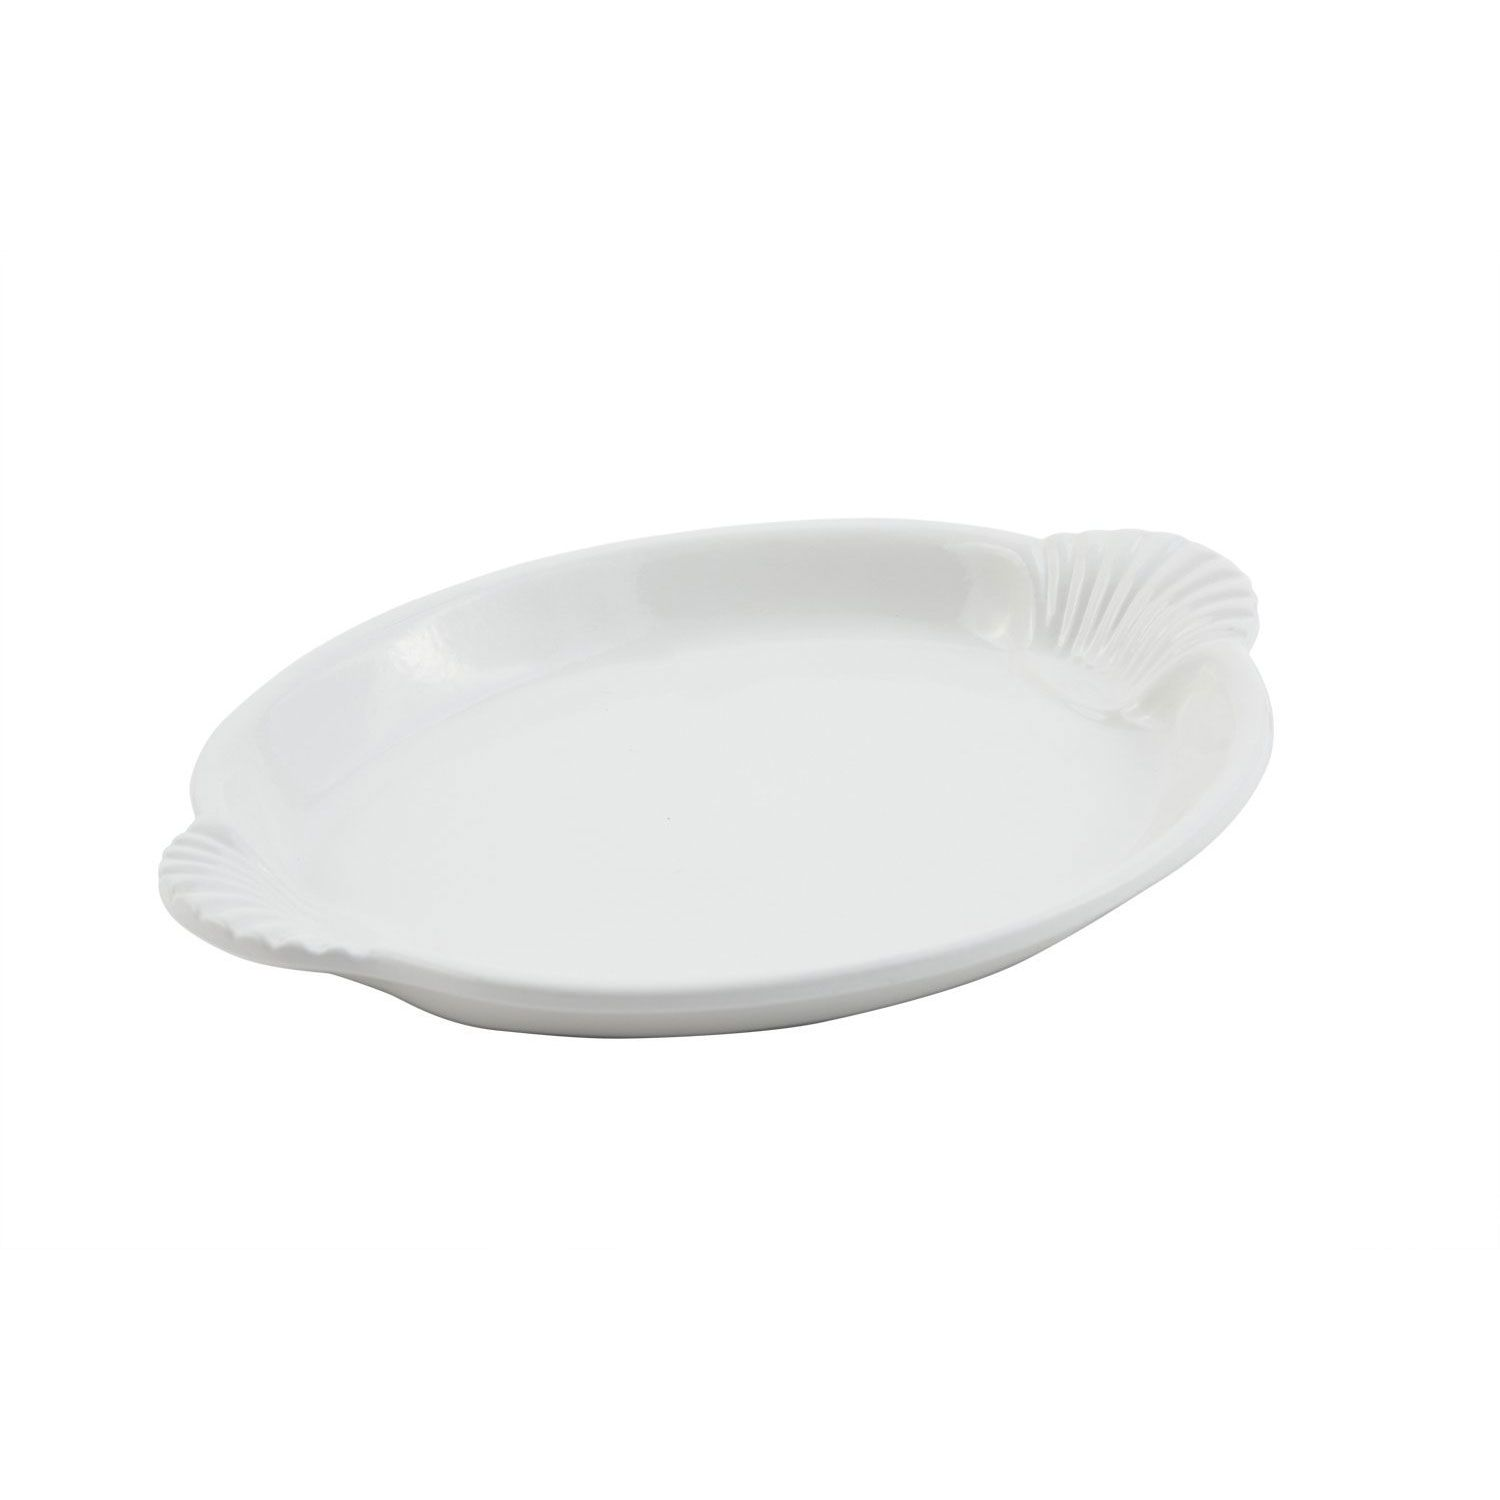 18 x 24 3/4 inch Shell Platter with 4 Brass Legs Sandstone White Tags:  Platters; Pewter Glo/Sandstone; Sandstone Platters;Sandstone White Platters;Sandstone Oblong Platters; https://www.ktsupply.com/products/32802337481/18-x-24-34-inch-Shell-Platter-with-4-Brass-Legs-Sandstone-White.html